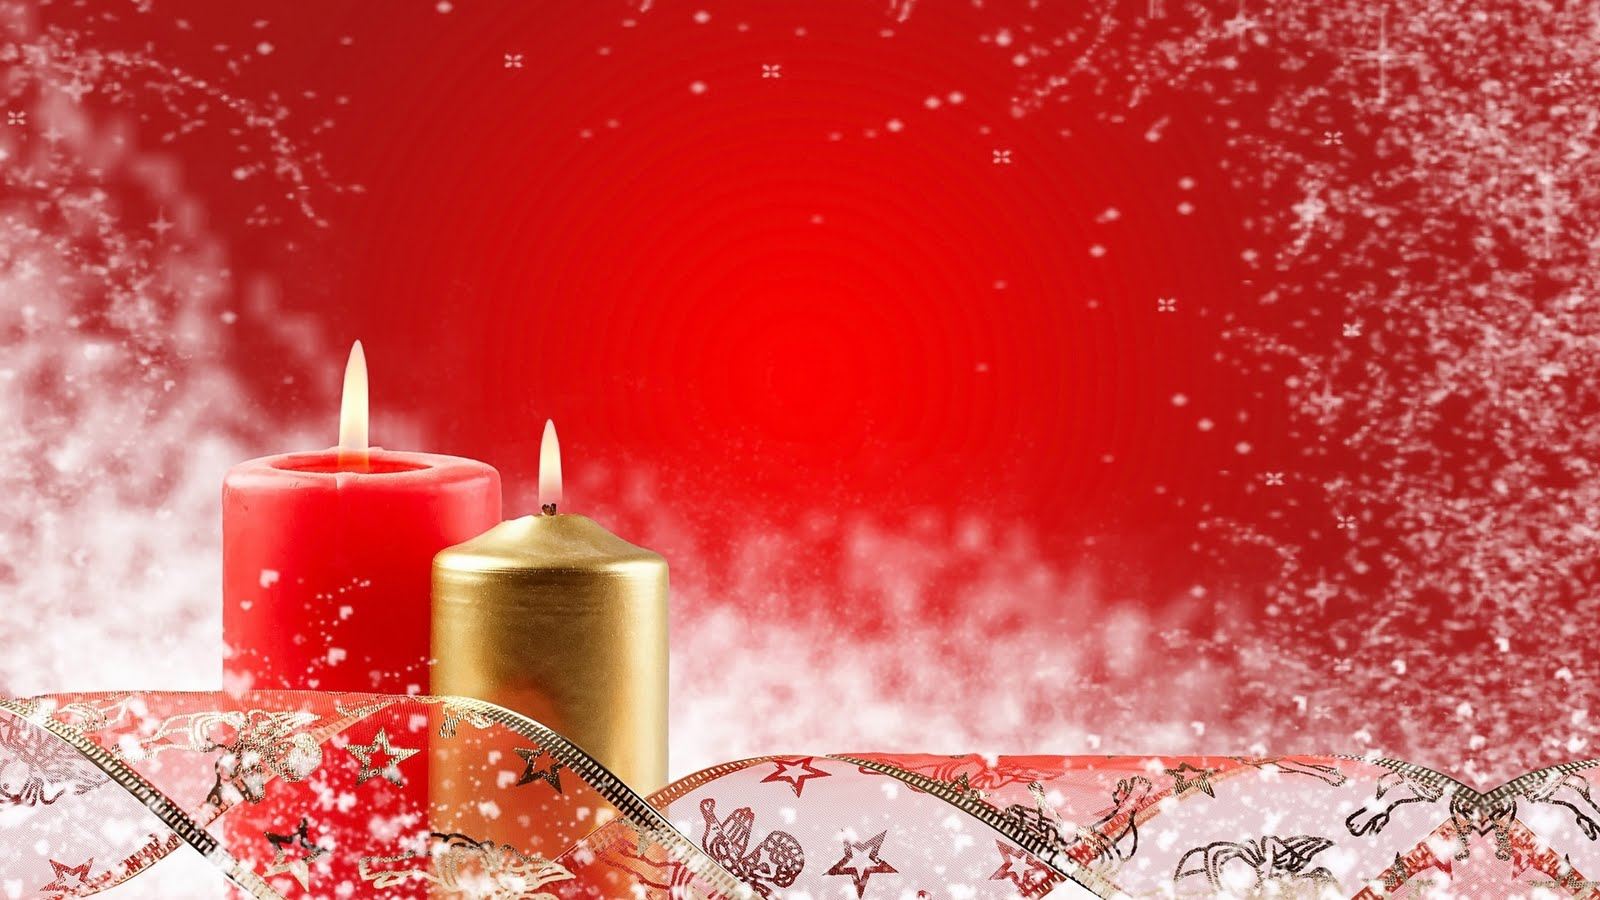 ... 2011 Christmas Greeting Cards Free Christmas Wallpapers E Cards Online: amazing-free-wallpapers.blogspot.com/2011/09/free-2011-christmas...